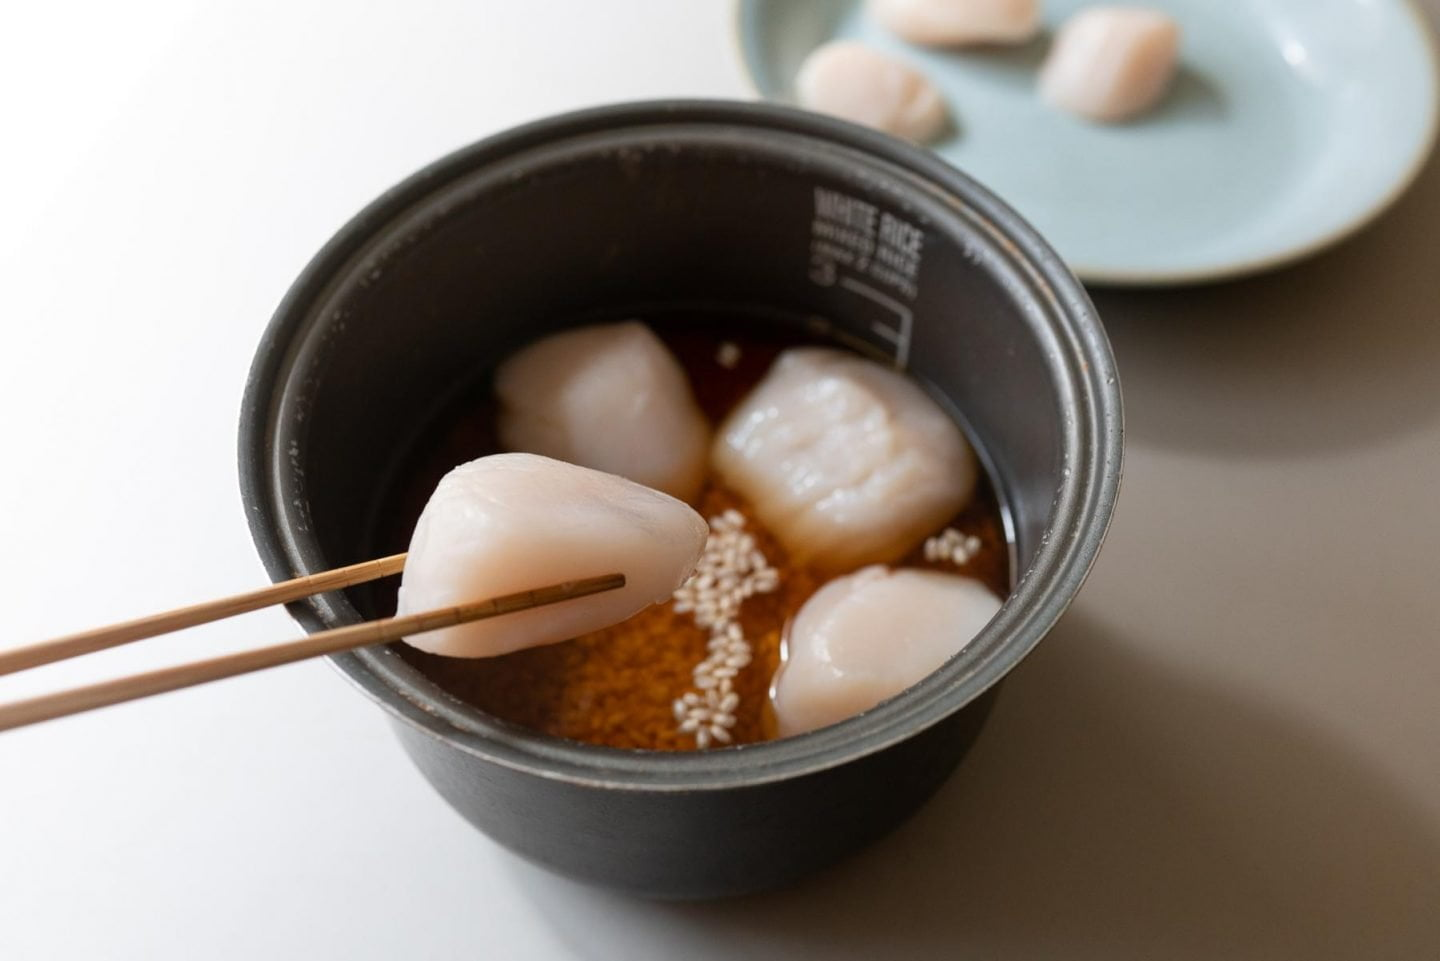 Adding raw scallops to the uncooked rice and cooking broth